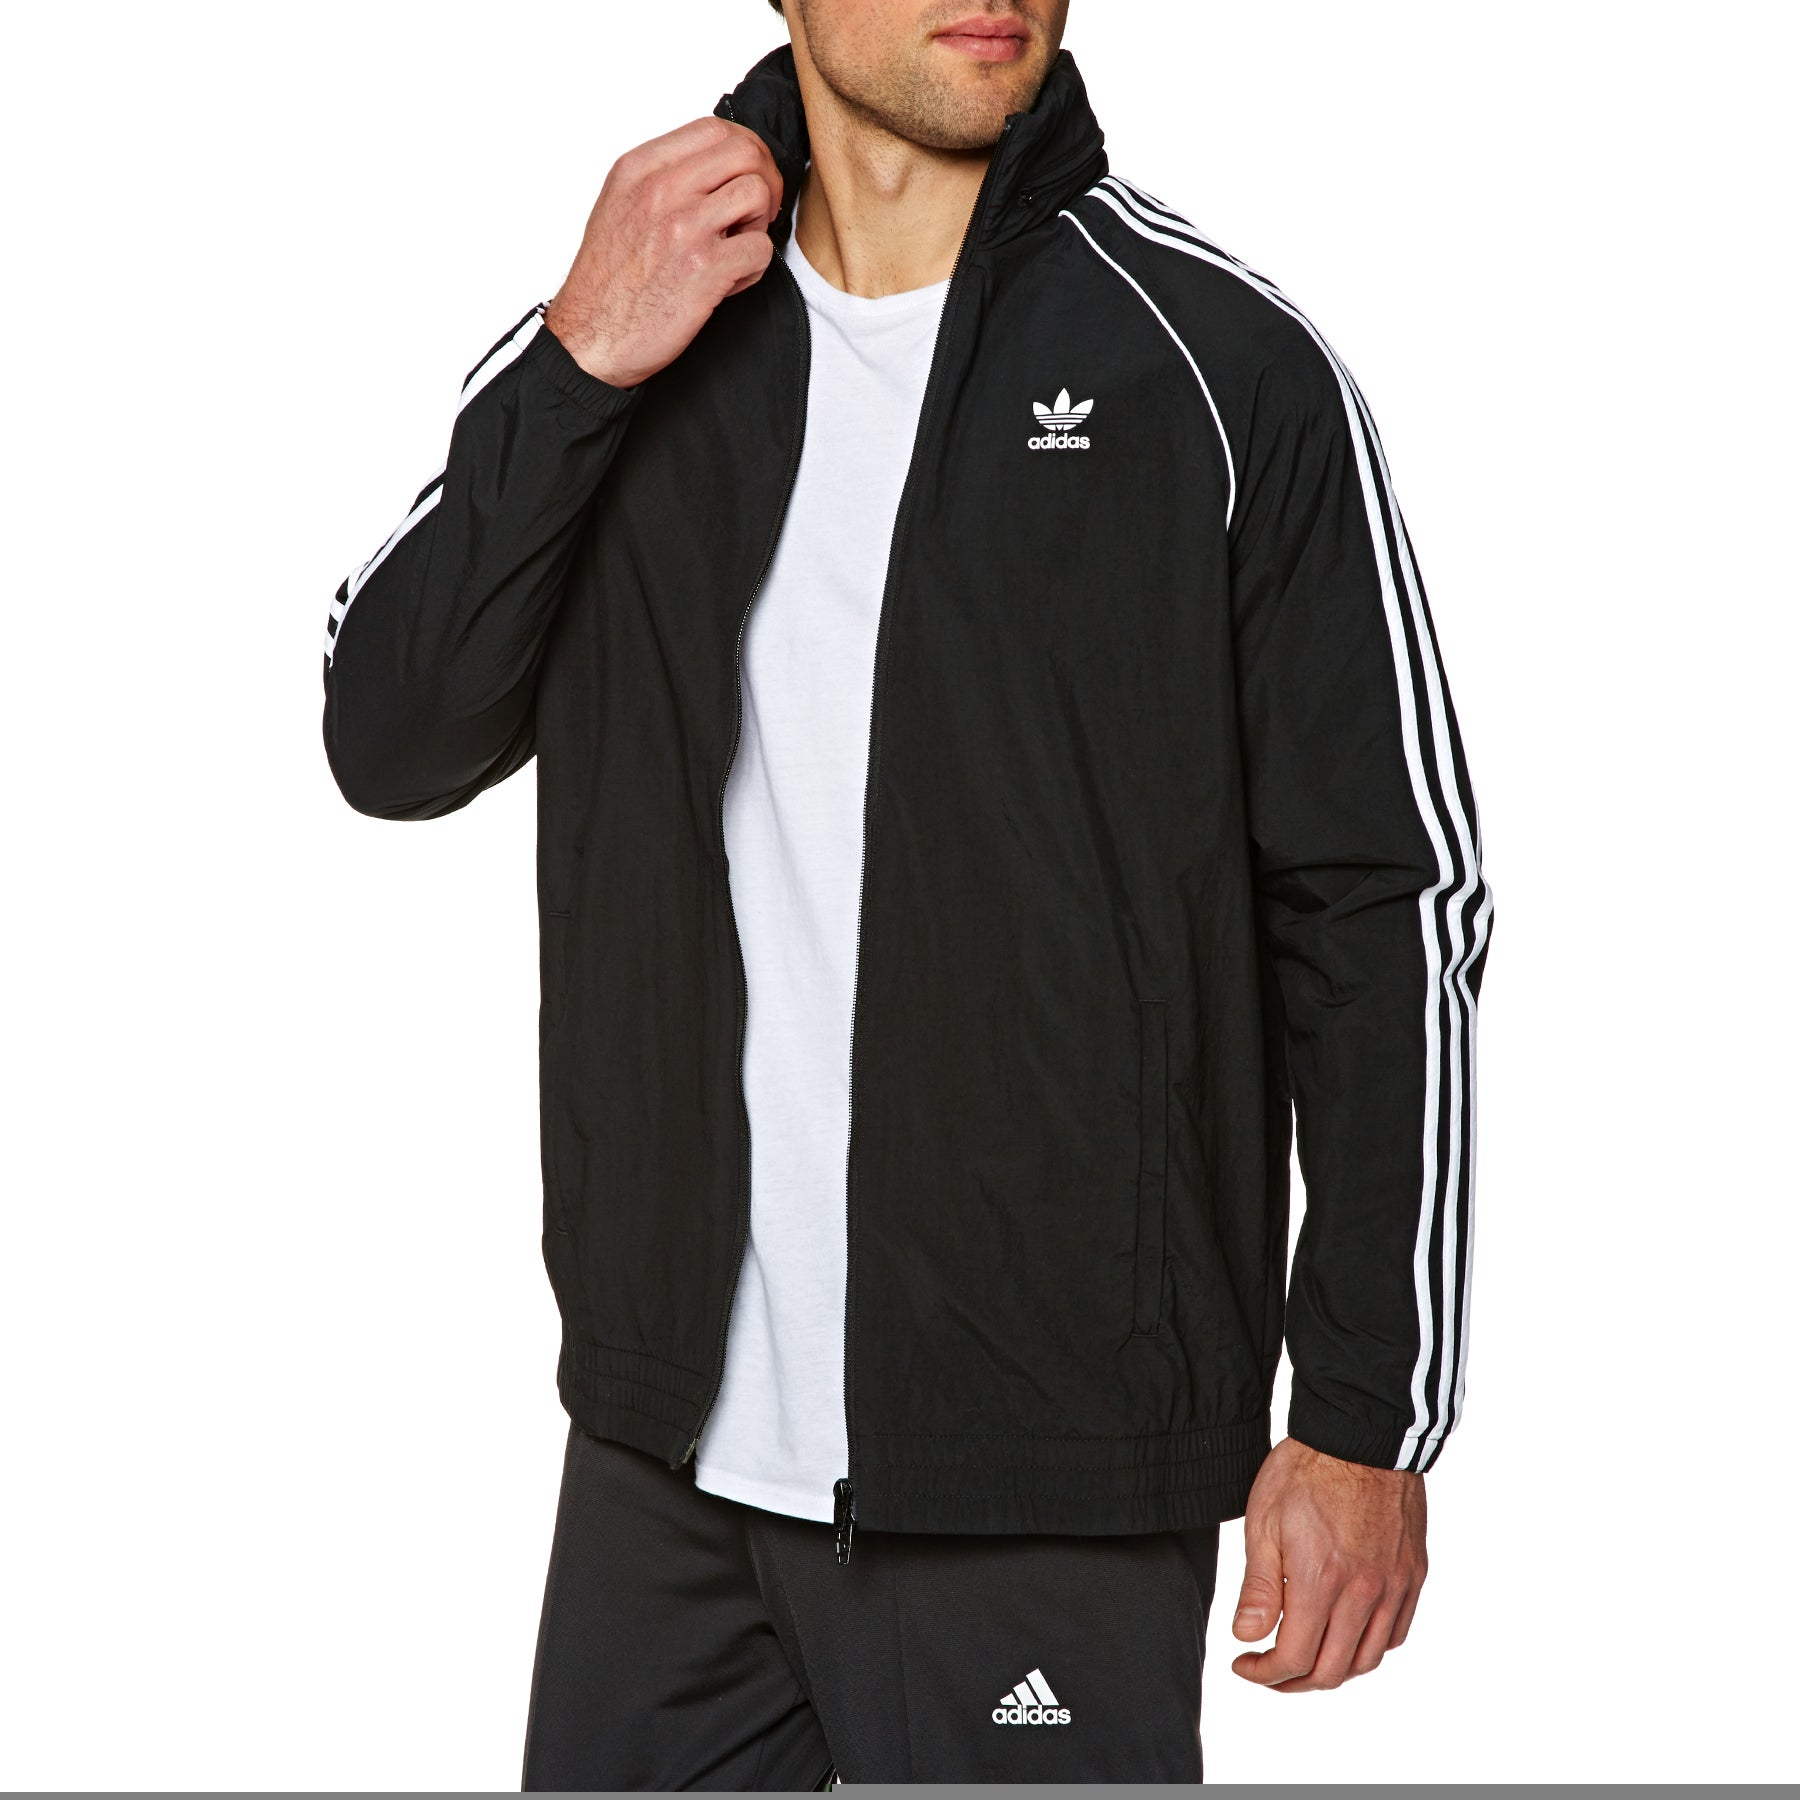 Adidas Originals SST Windproof Jacket - Black